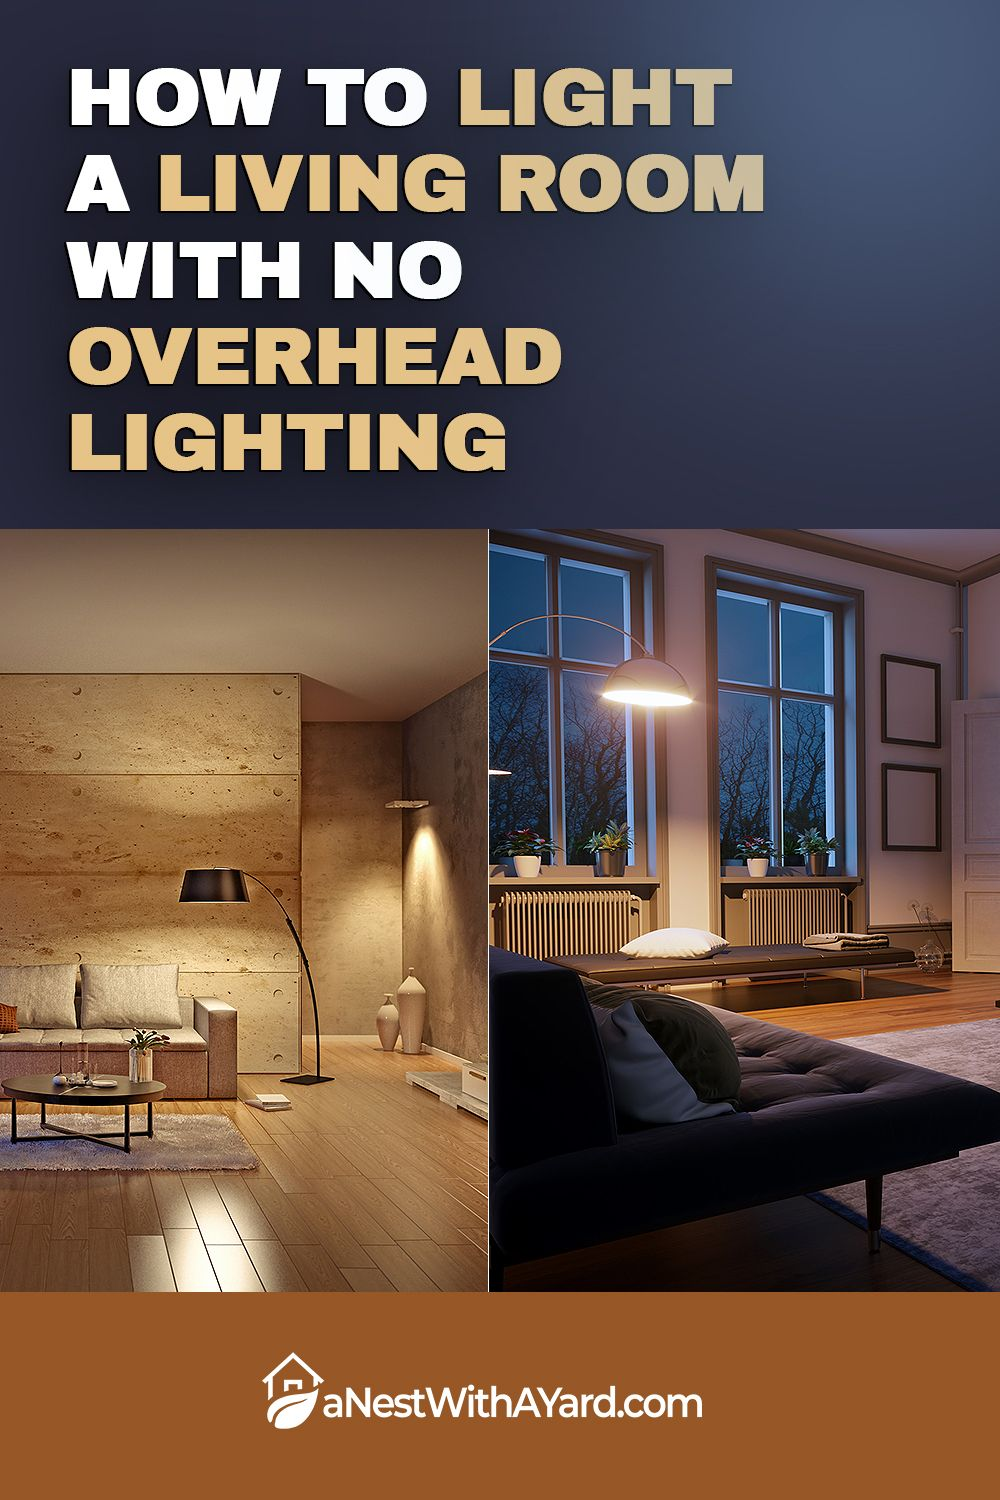 How To Light A Living Room With No Overhead Lighting In 2020 Overhead Lighting Black Pendant Light Fixtures Basement Lighting #no #overhead #lighting #in #living #room